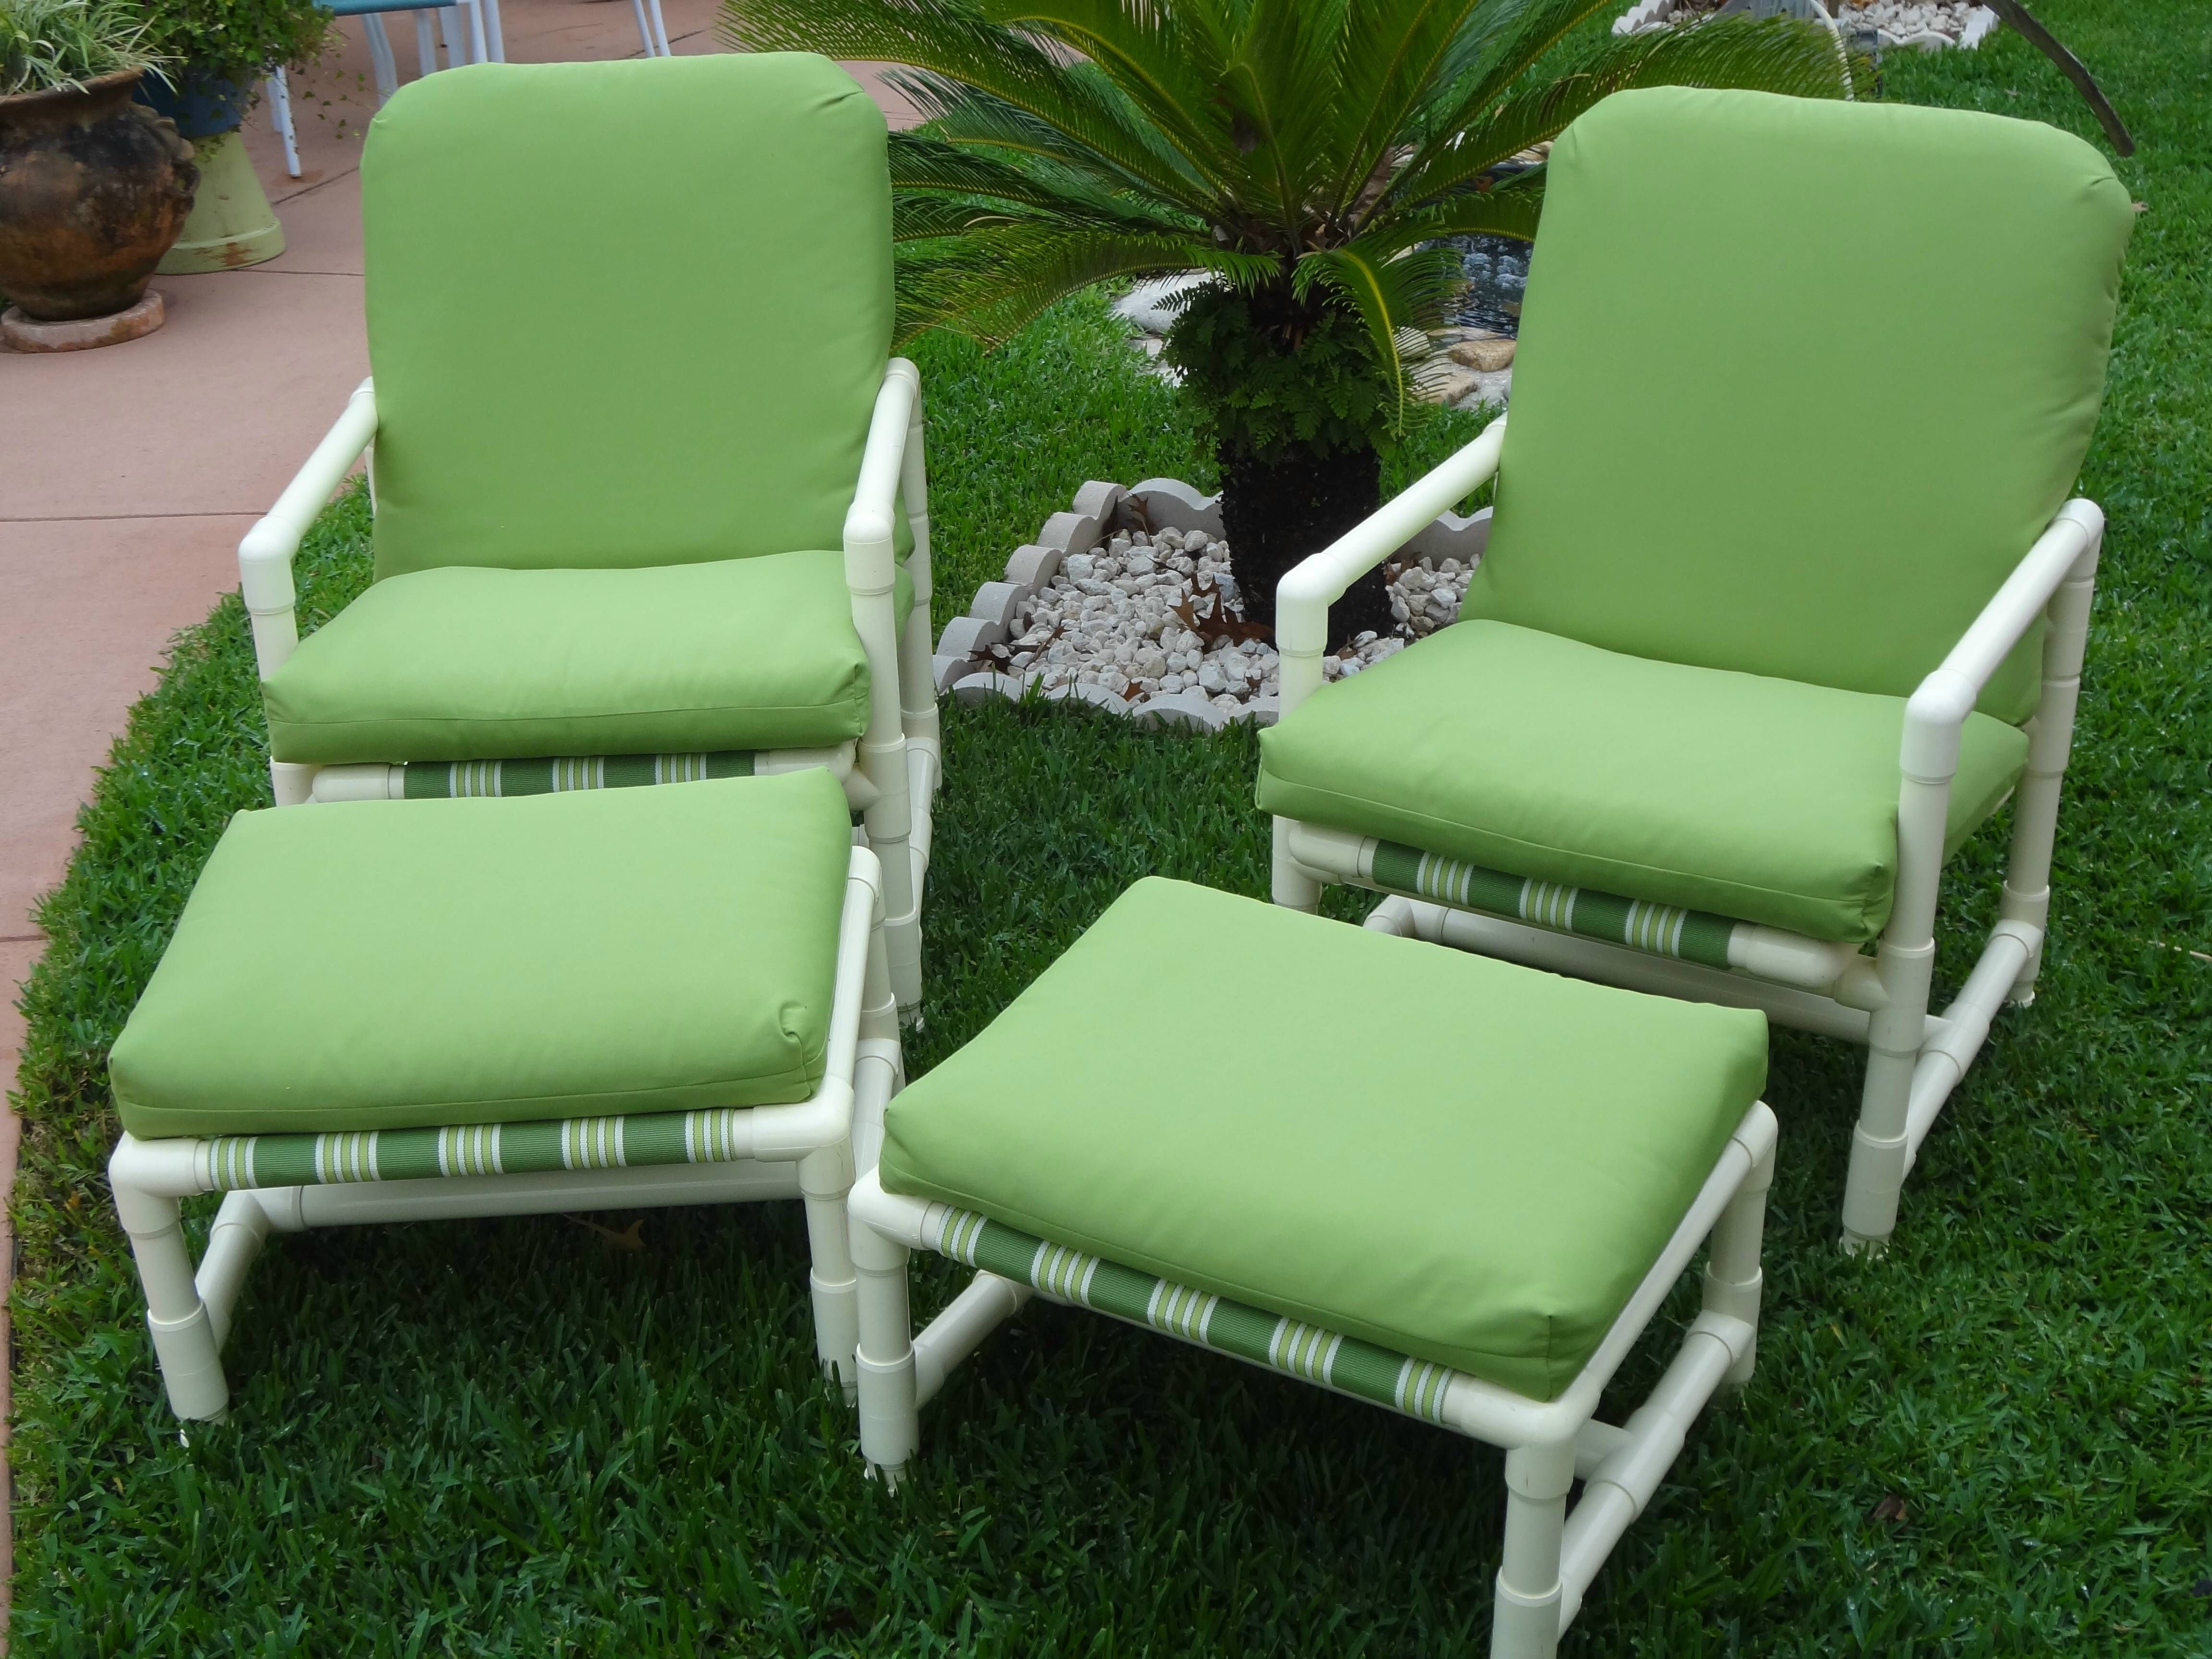 These PVC patio chairs e apart easily by removing screws Sling